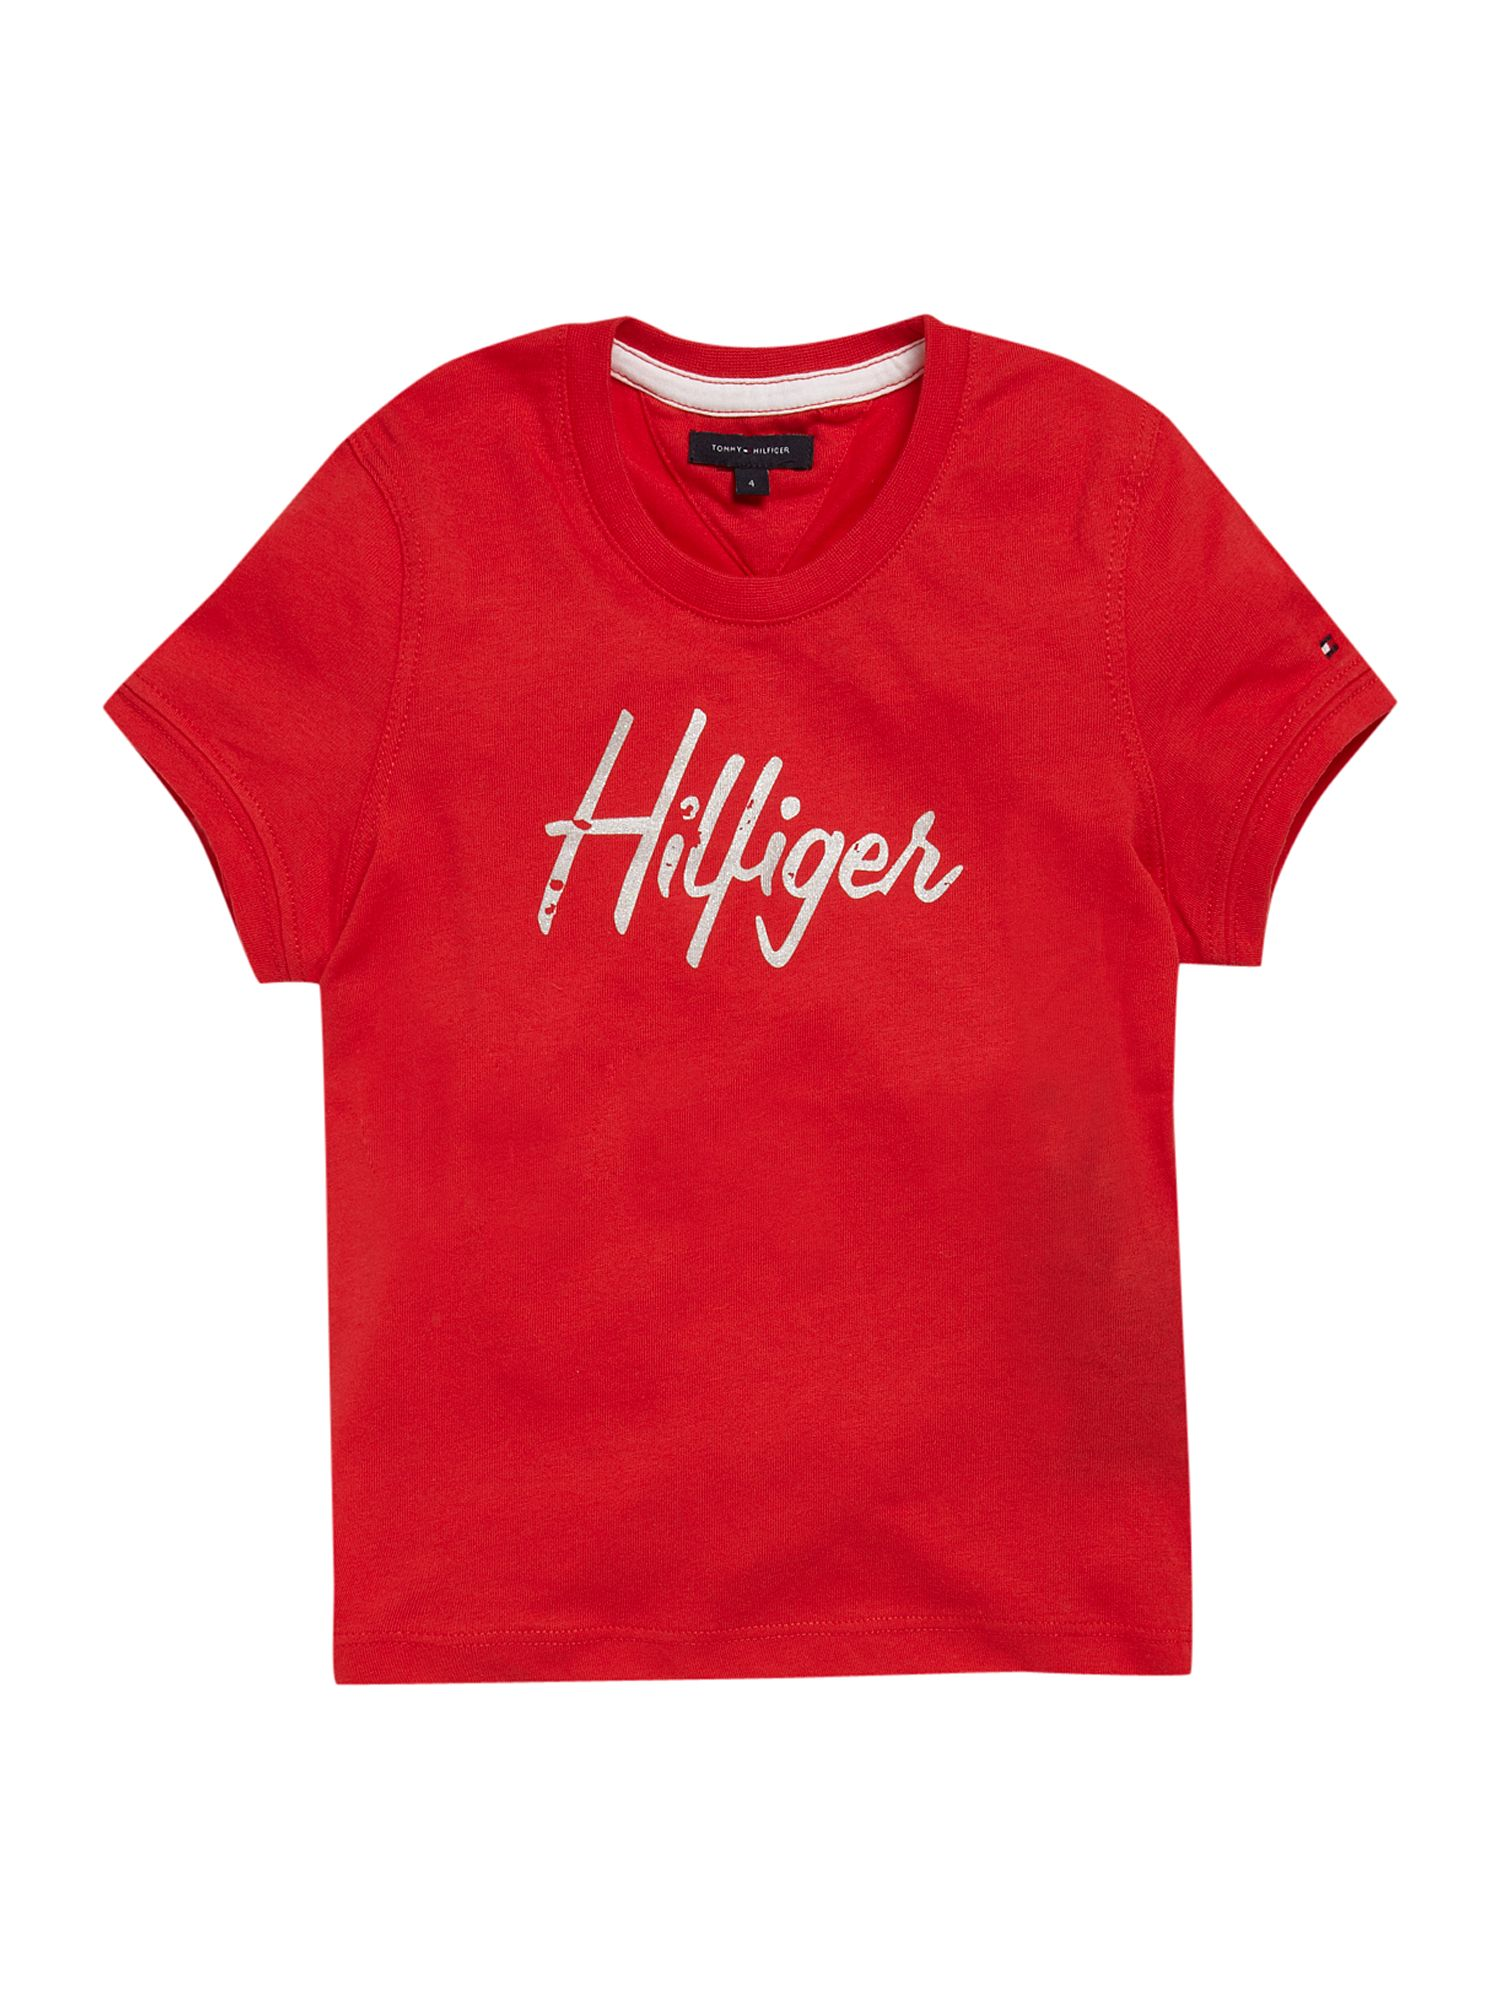 Tommy Hilfiger Annemary short-sleeved T-shirt Red product image